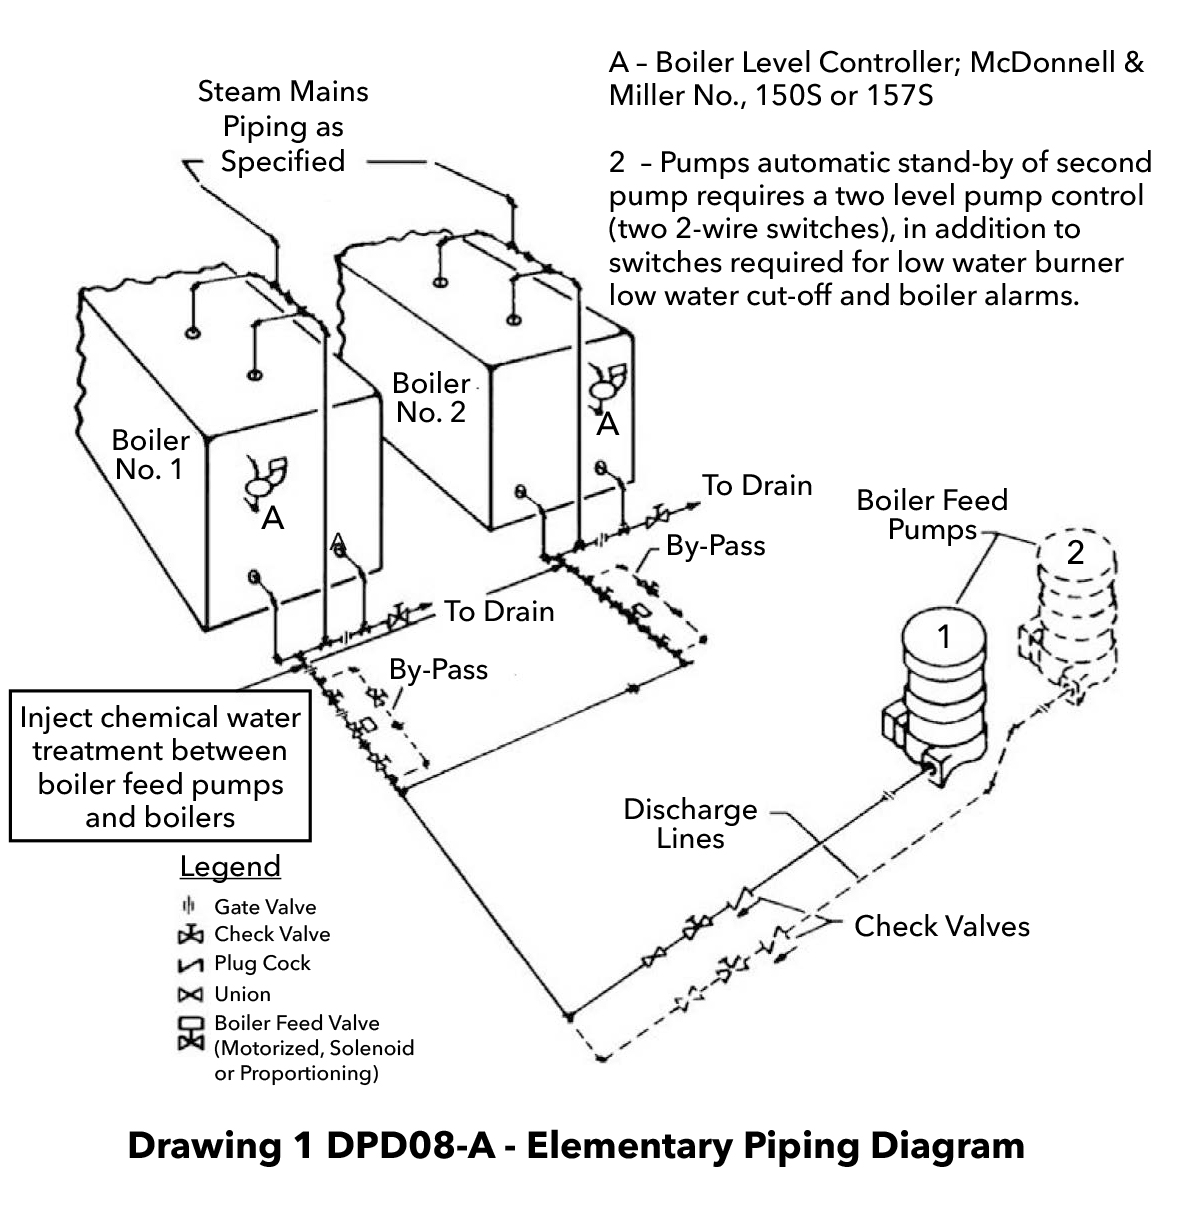 Typical Boiler Feed Unit Discharge Piping Arrangements Xylem Well Pump Wire Diagram Miller A Third Dedicated Standby Has Been Added In This Instance Each Is Sized For The Load Of Its Respective